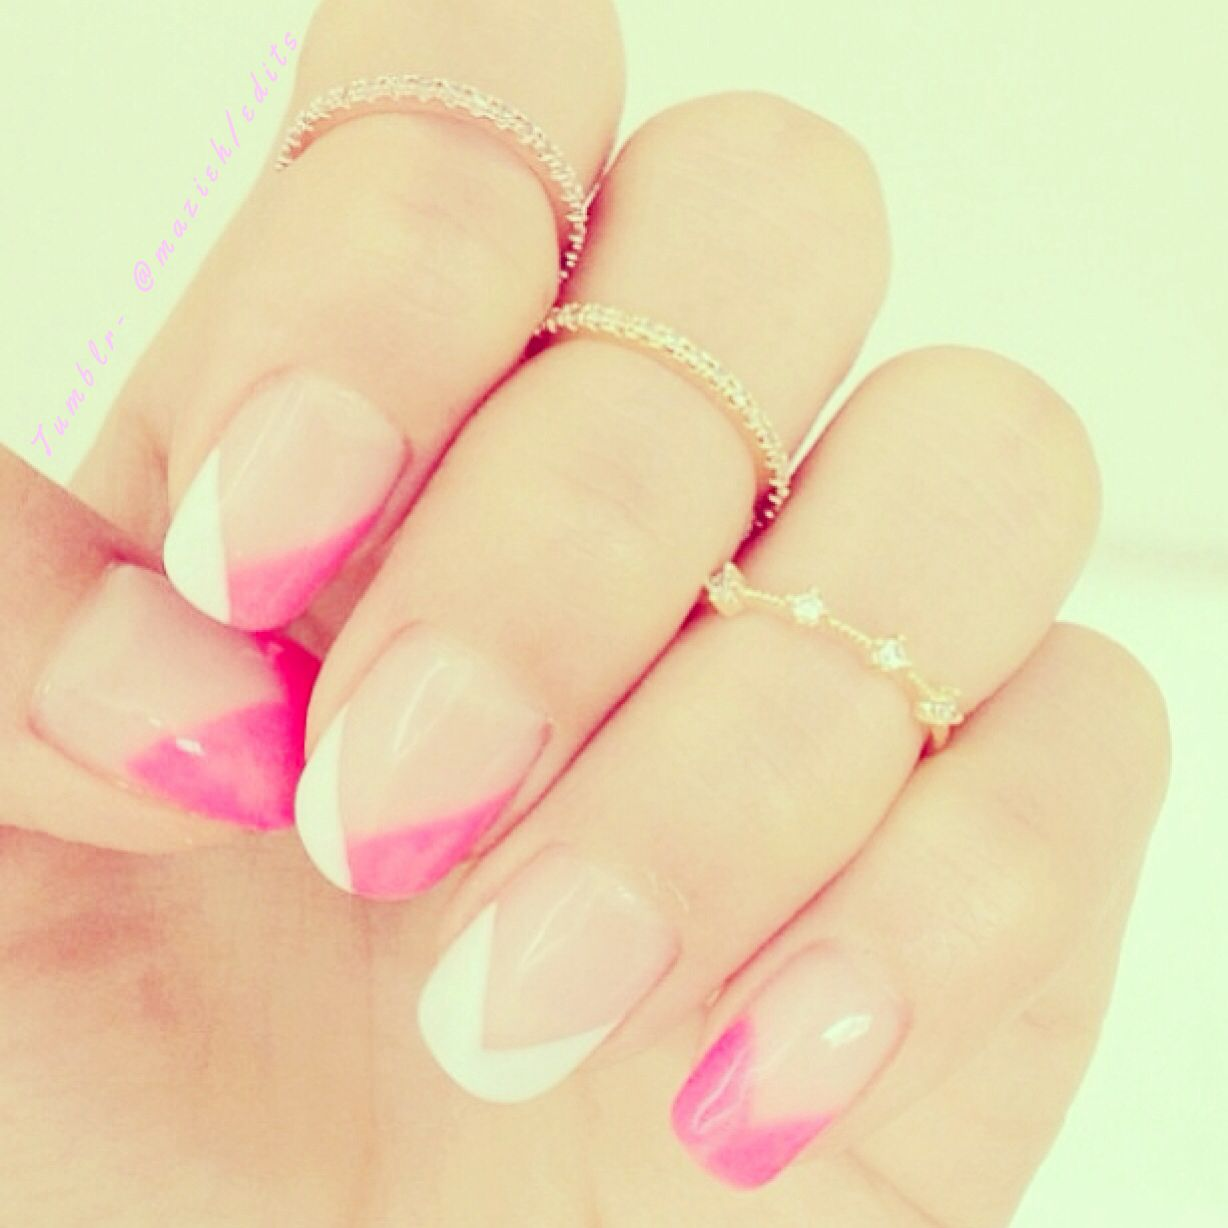 Pink and white nail design